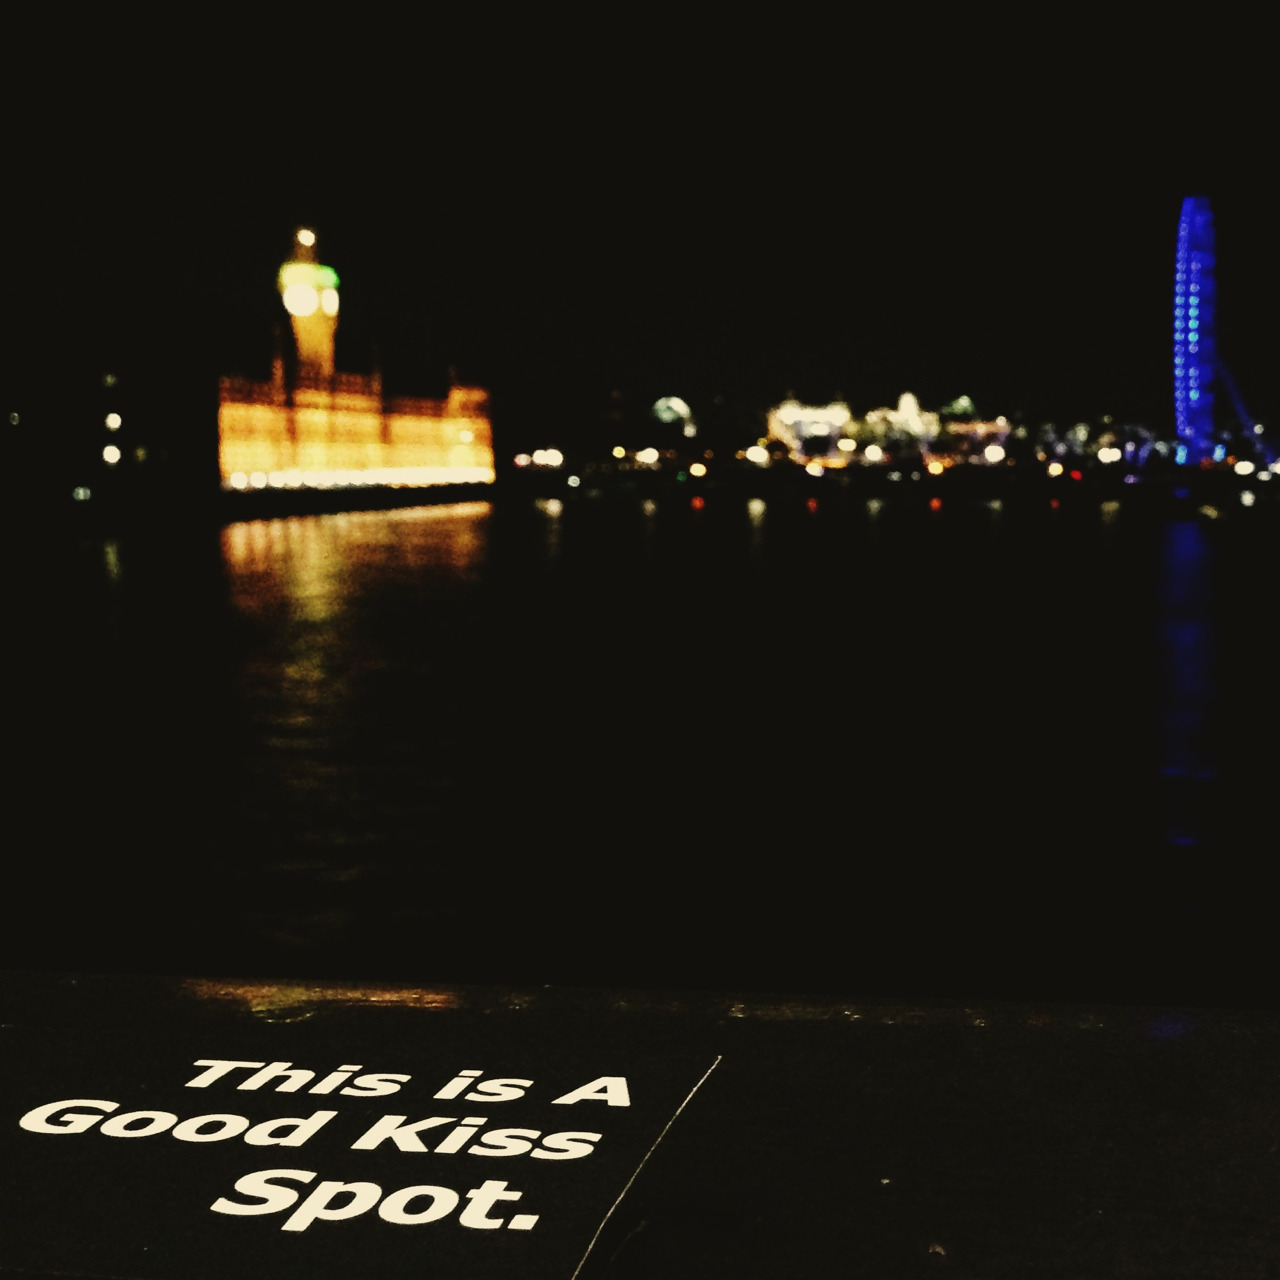 """A Good Kiss Spot"" (Lambeth Bridge)"